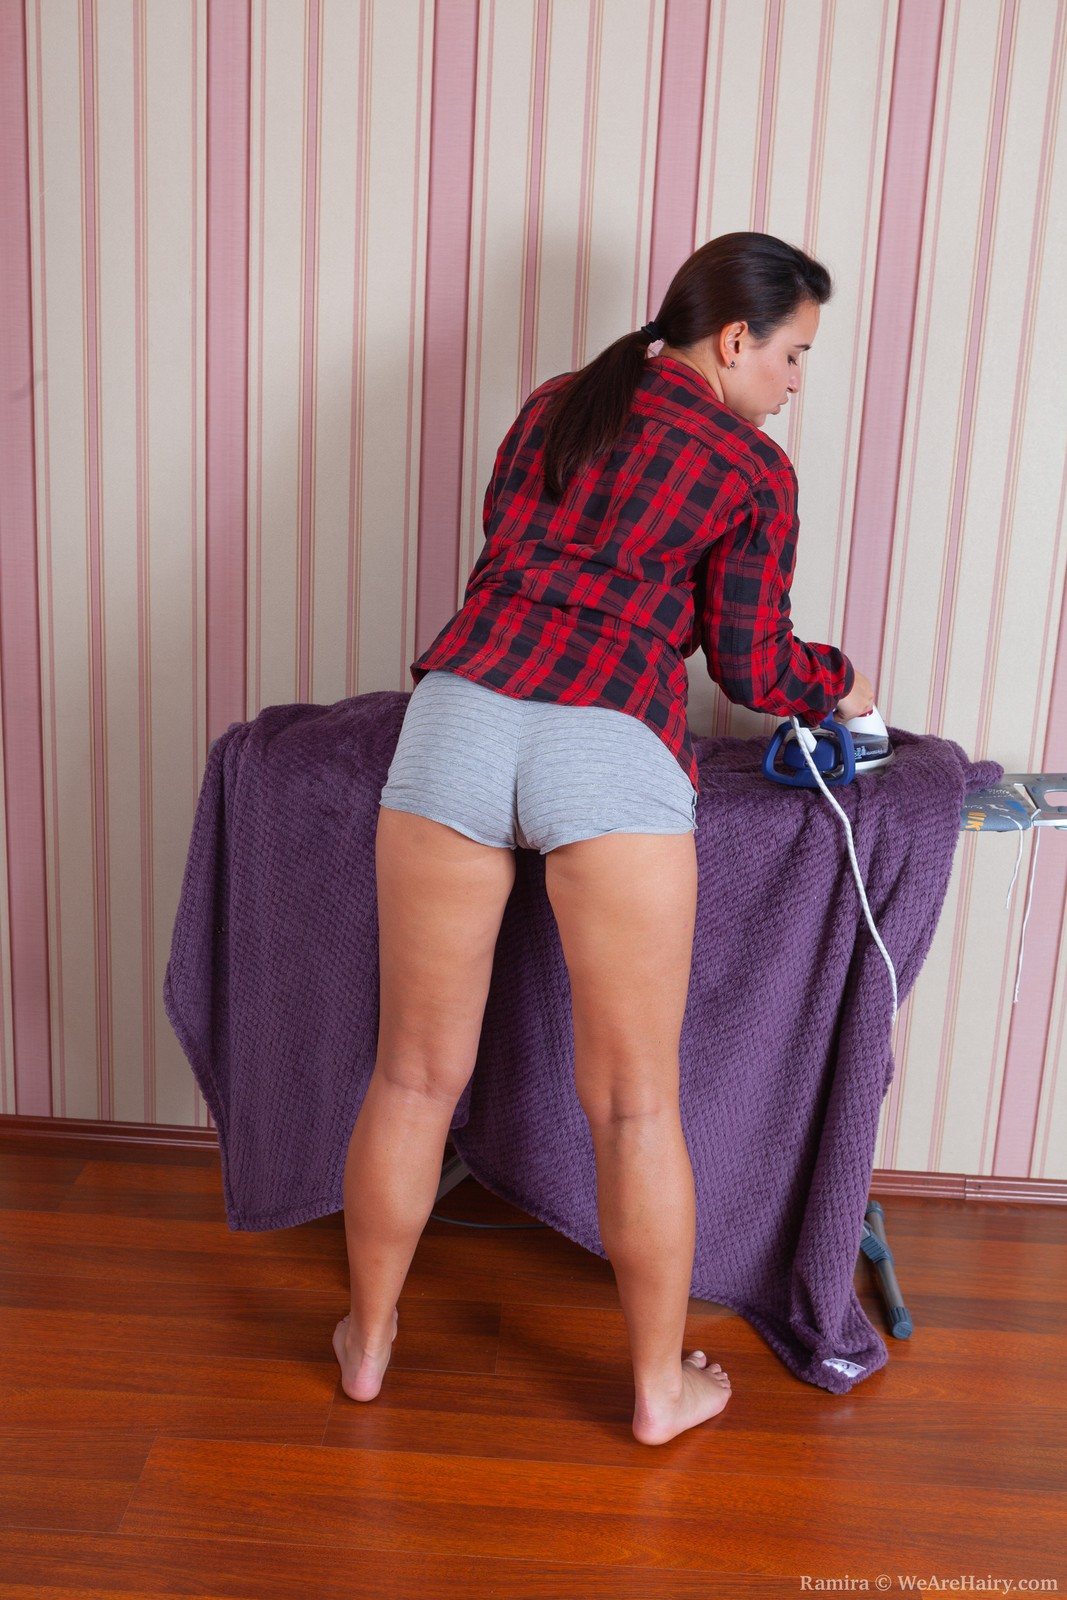 Ramira strips naked after some ironing work